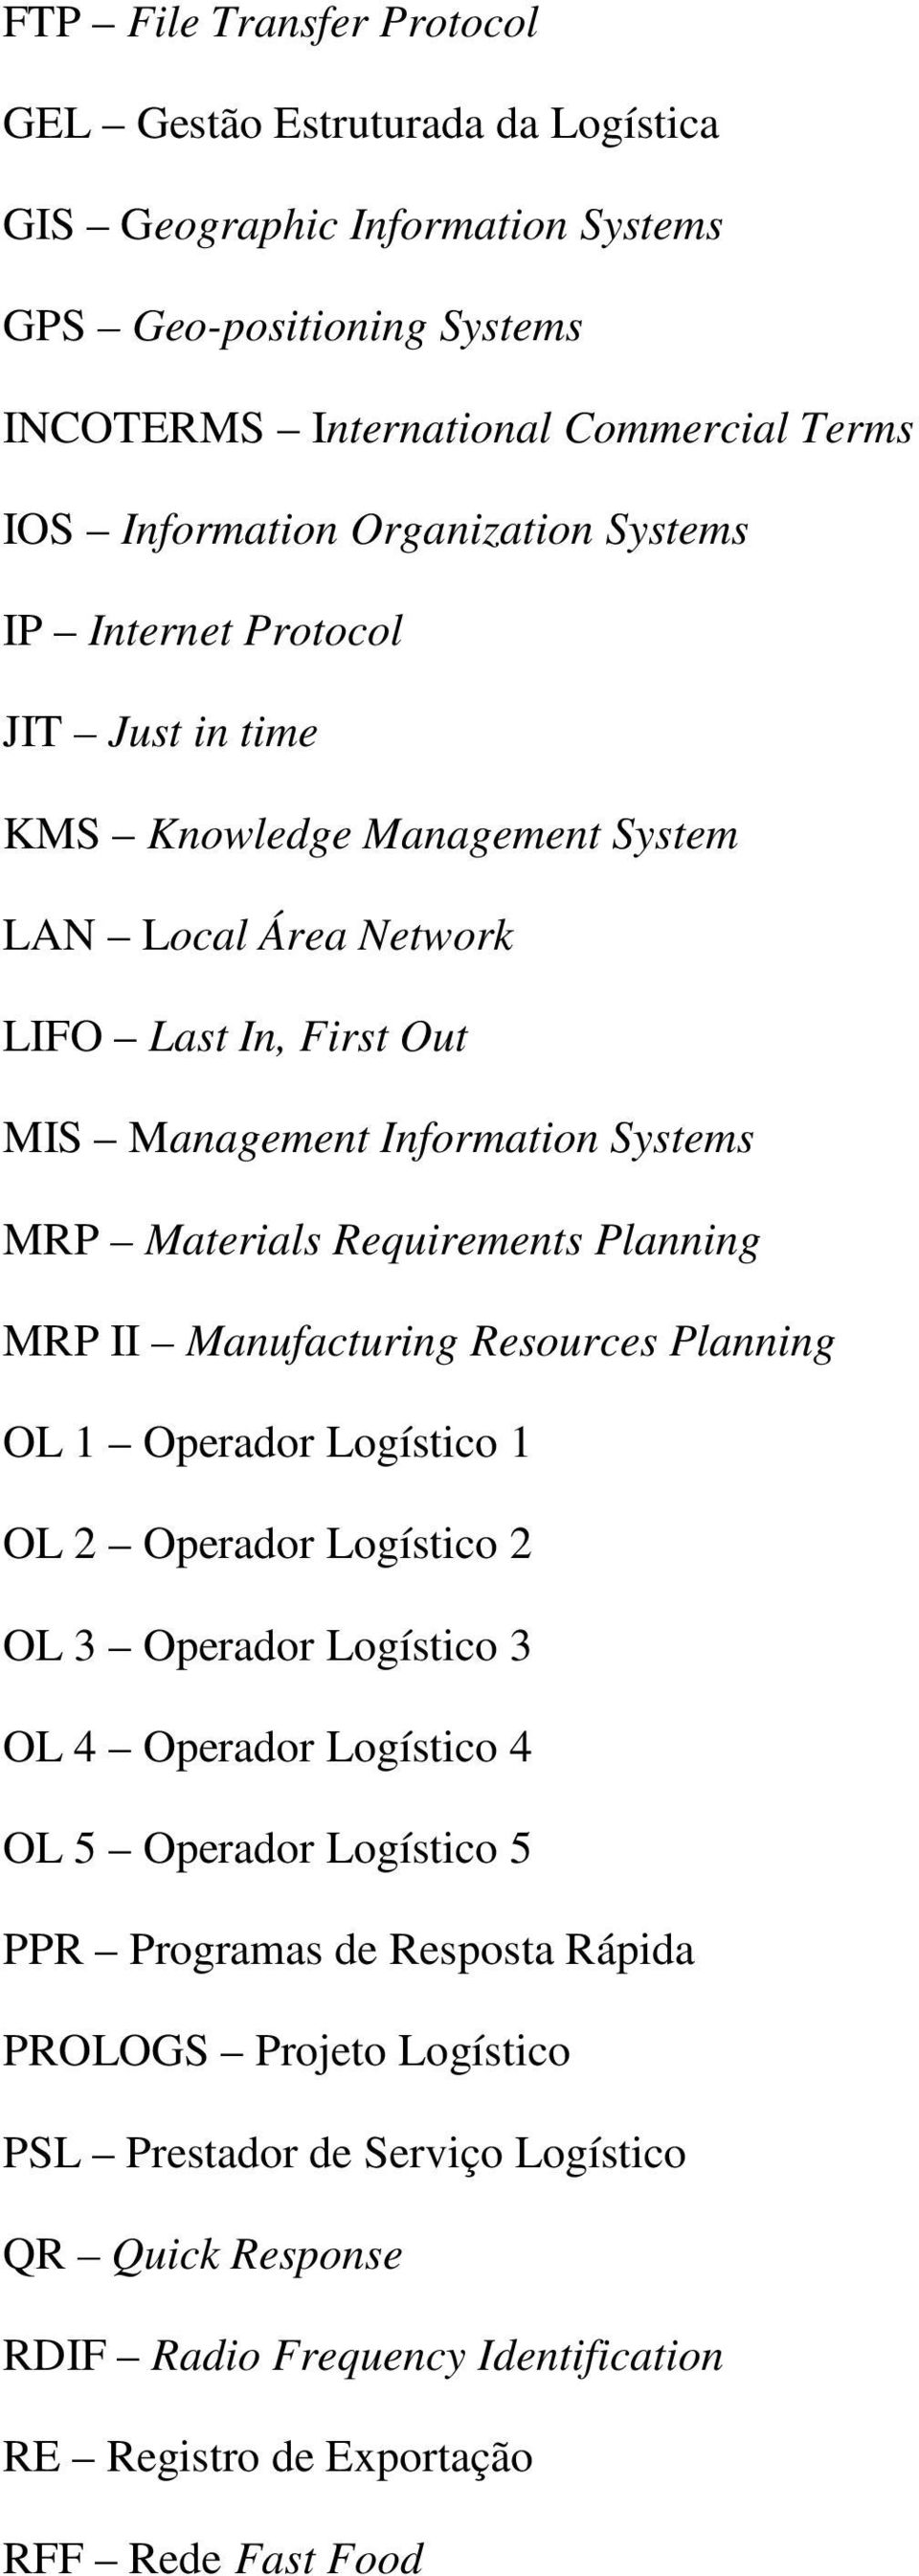 Requirements Planning MRP II Manufacturing Resources Planning OL 1 Operador Logístico 1 OL 2 Operador Logístico 2 OL 3 Operador Logístico 3 OL 4 Operador Logístico 4 OL 5 Operador